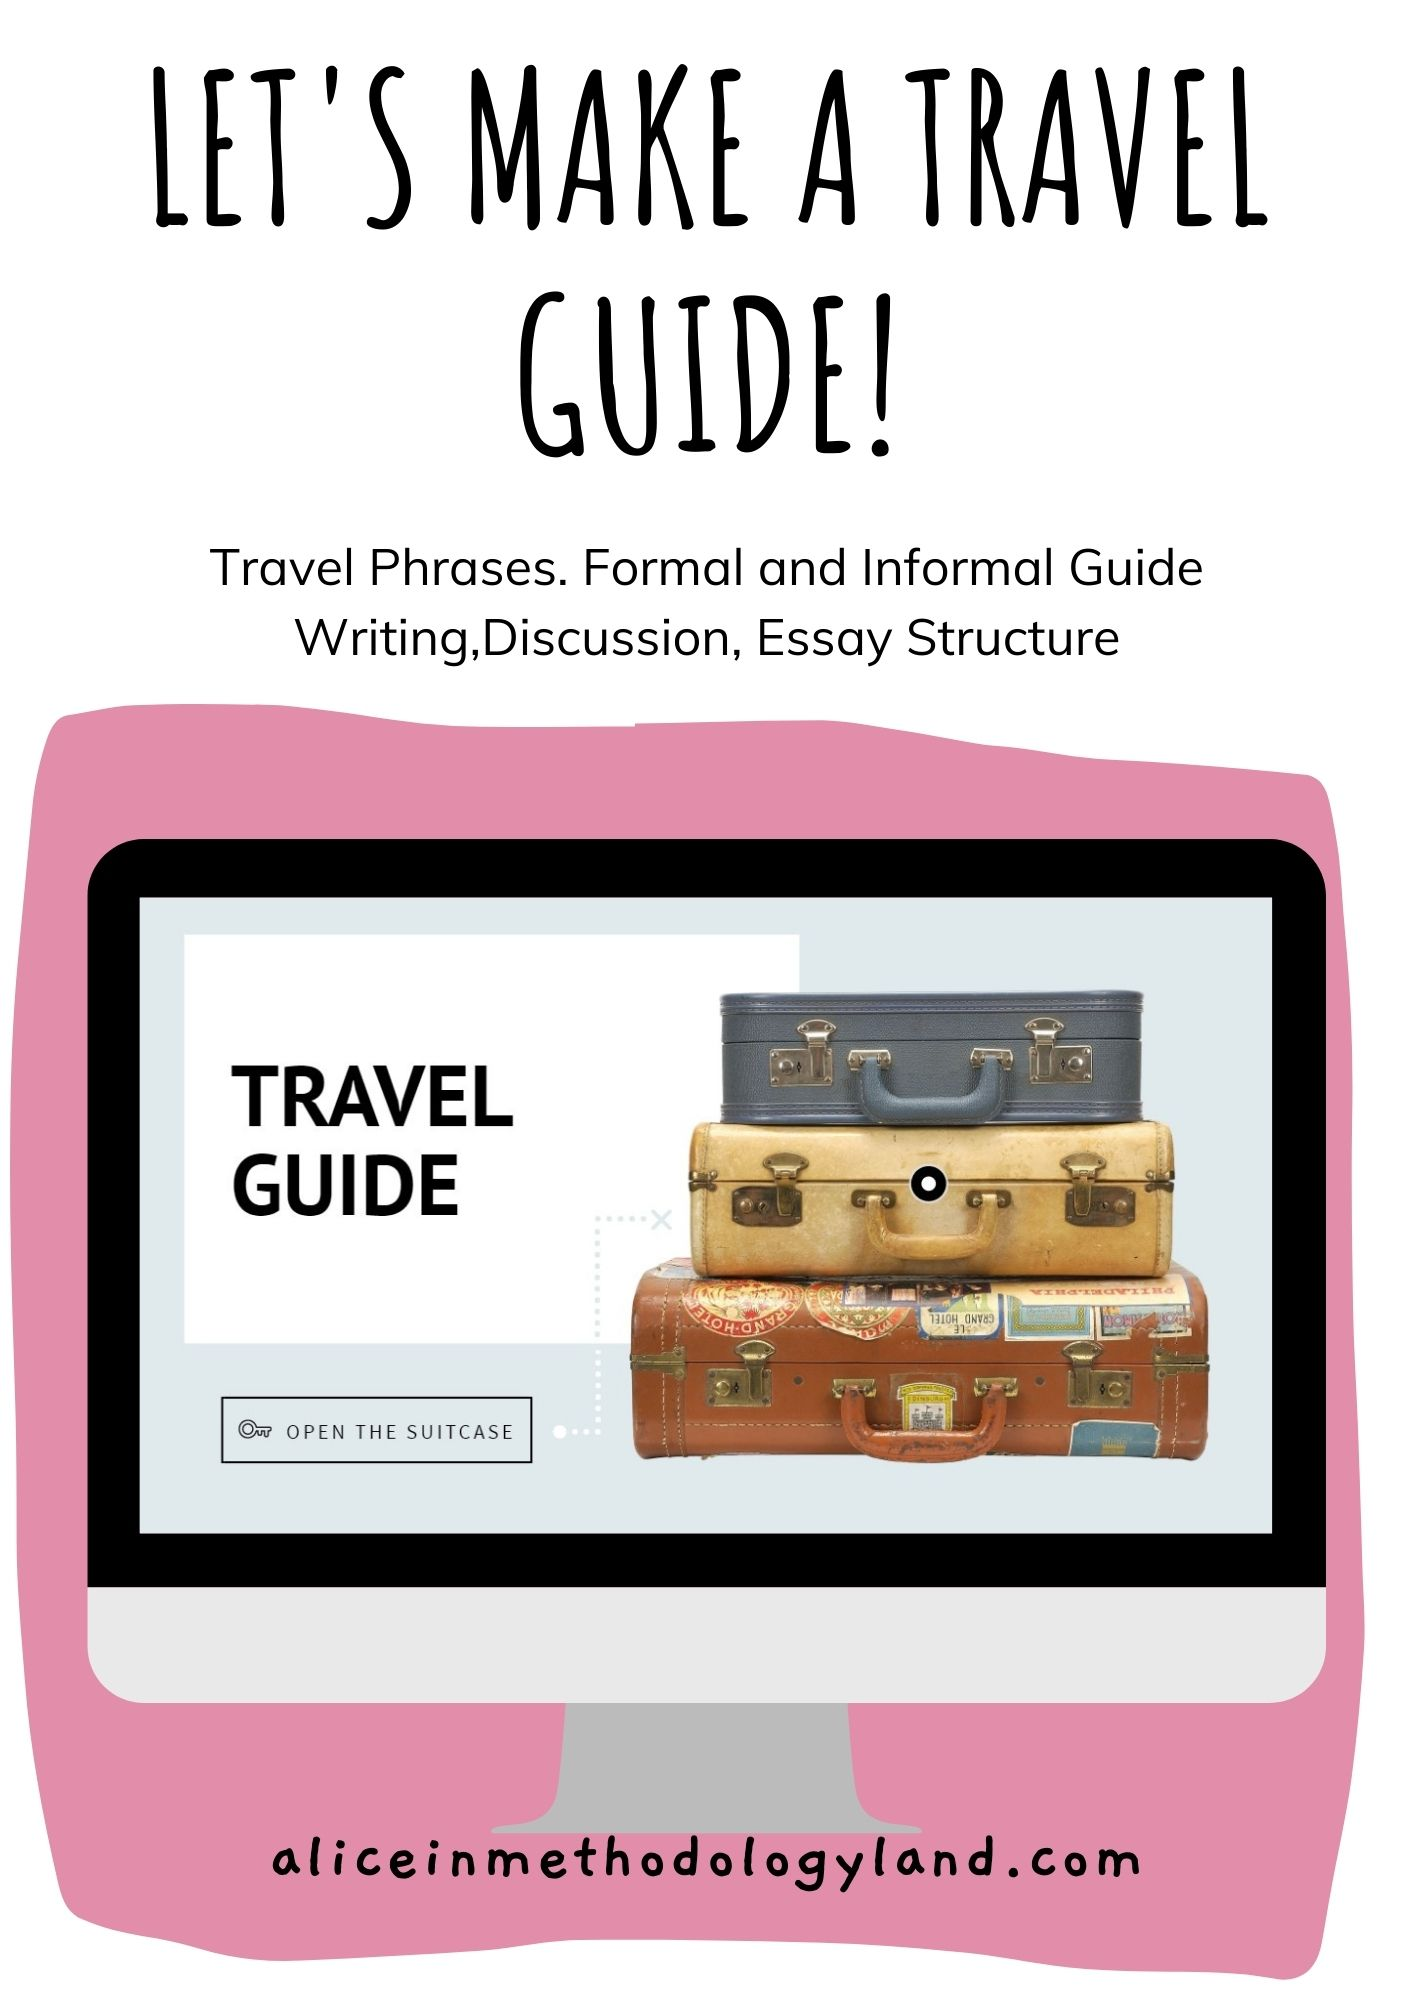 Travel Guide School Project Example 2: Young Bloggers Visiting Singapore, Hong Kong, and Paris